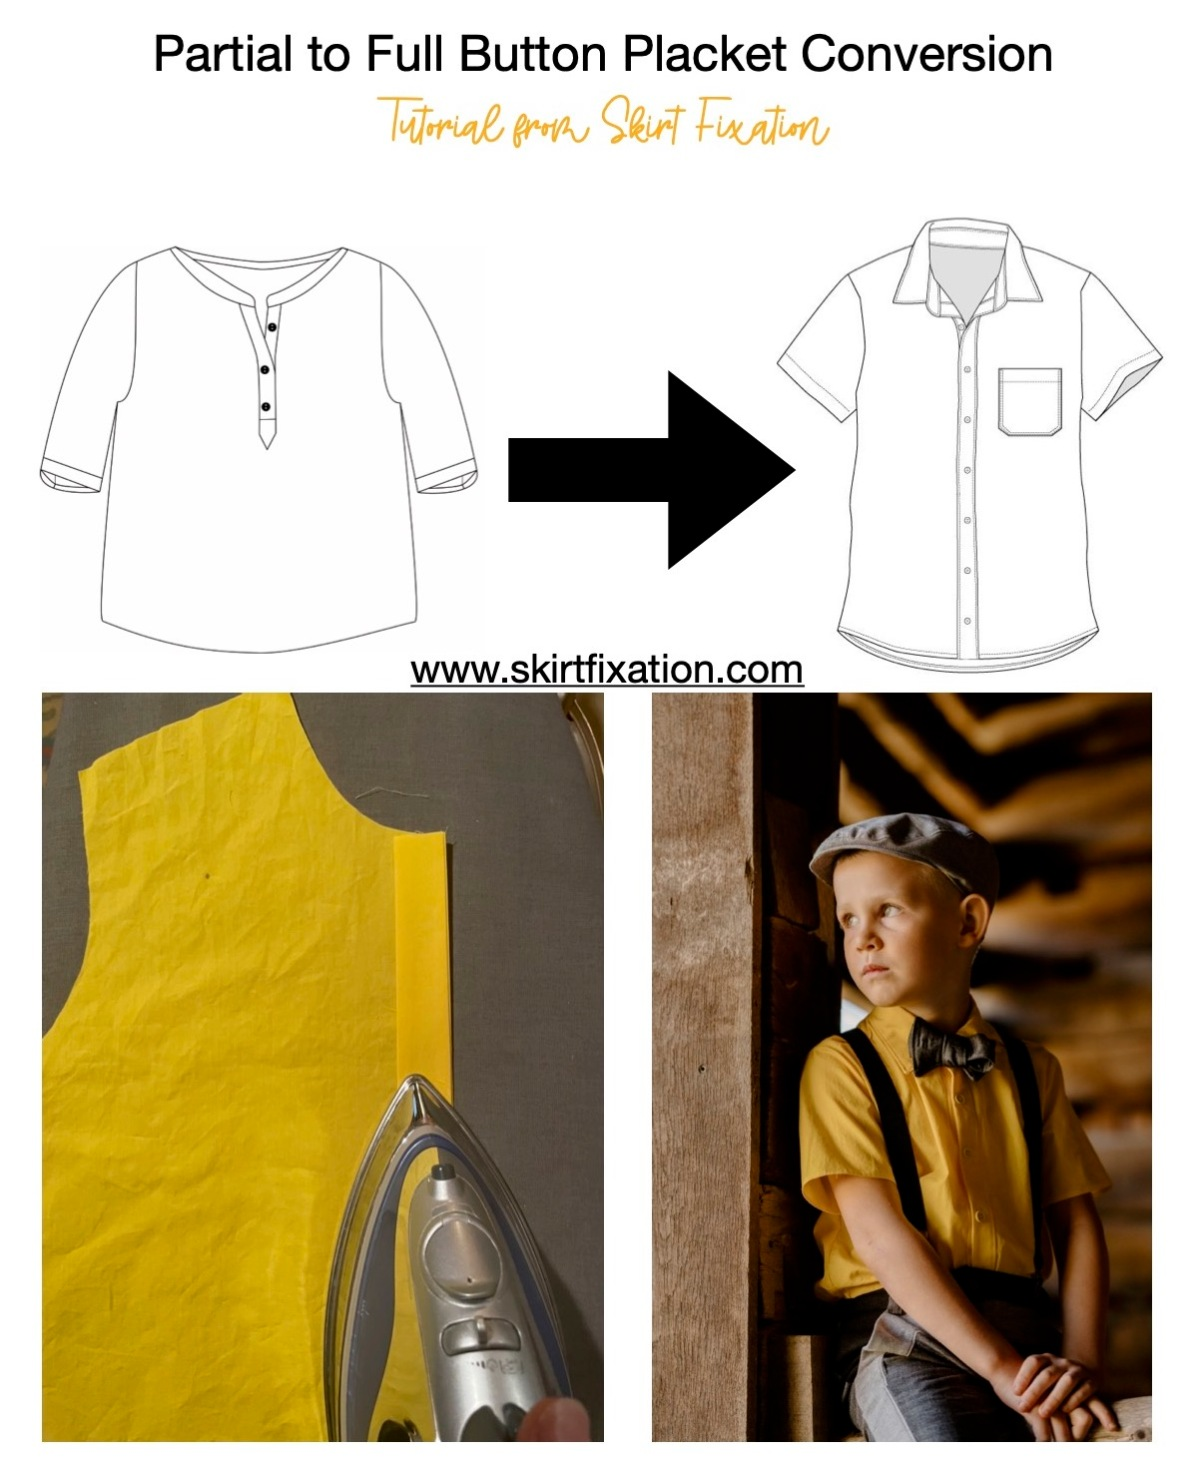 Partial to full button placket tutorial from Skirt Fixation